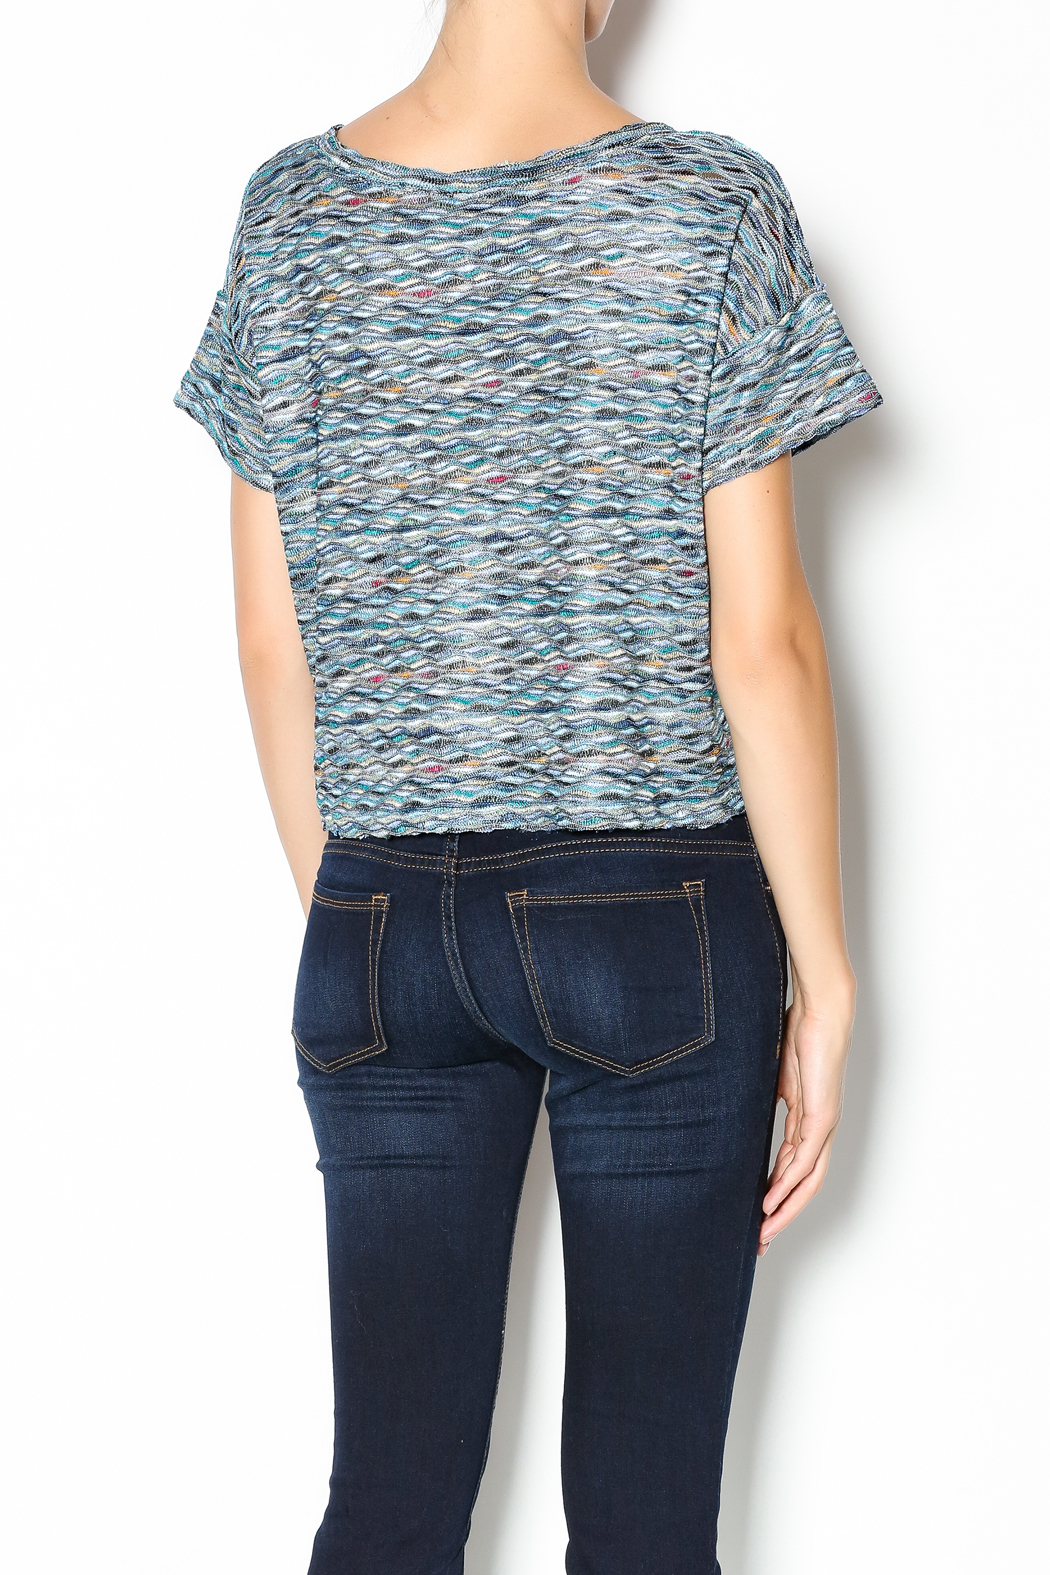 Free People Rainbow Wave Box Tee - Back Cropped Image